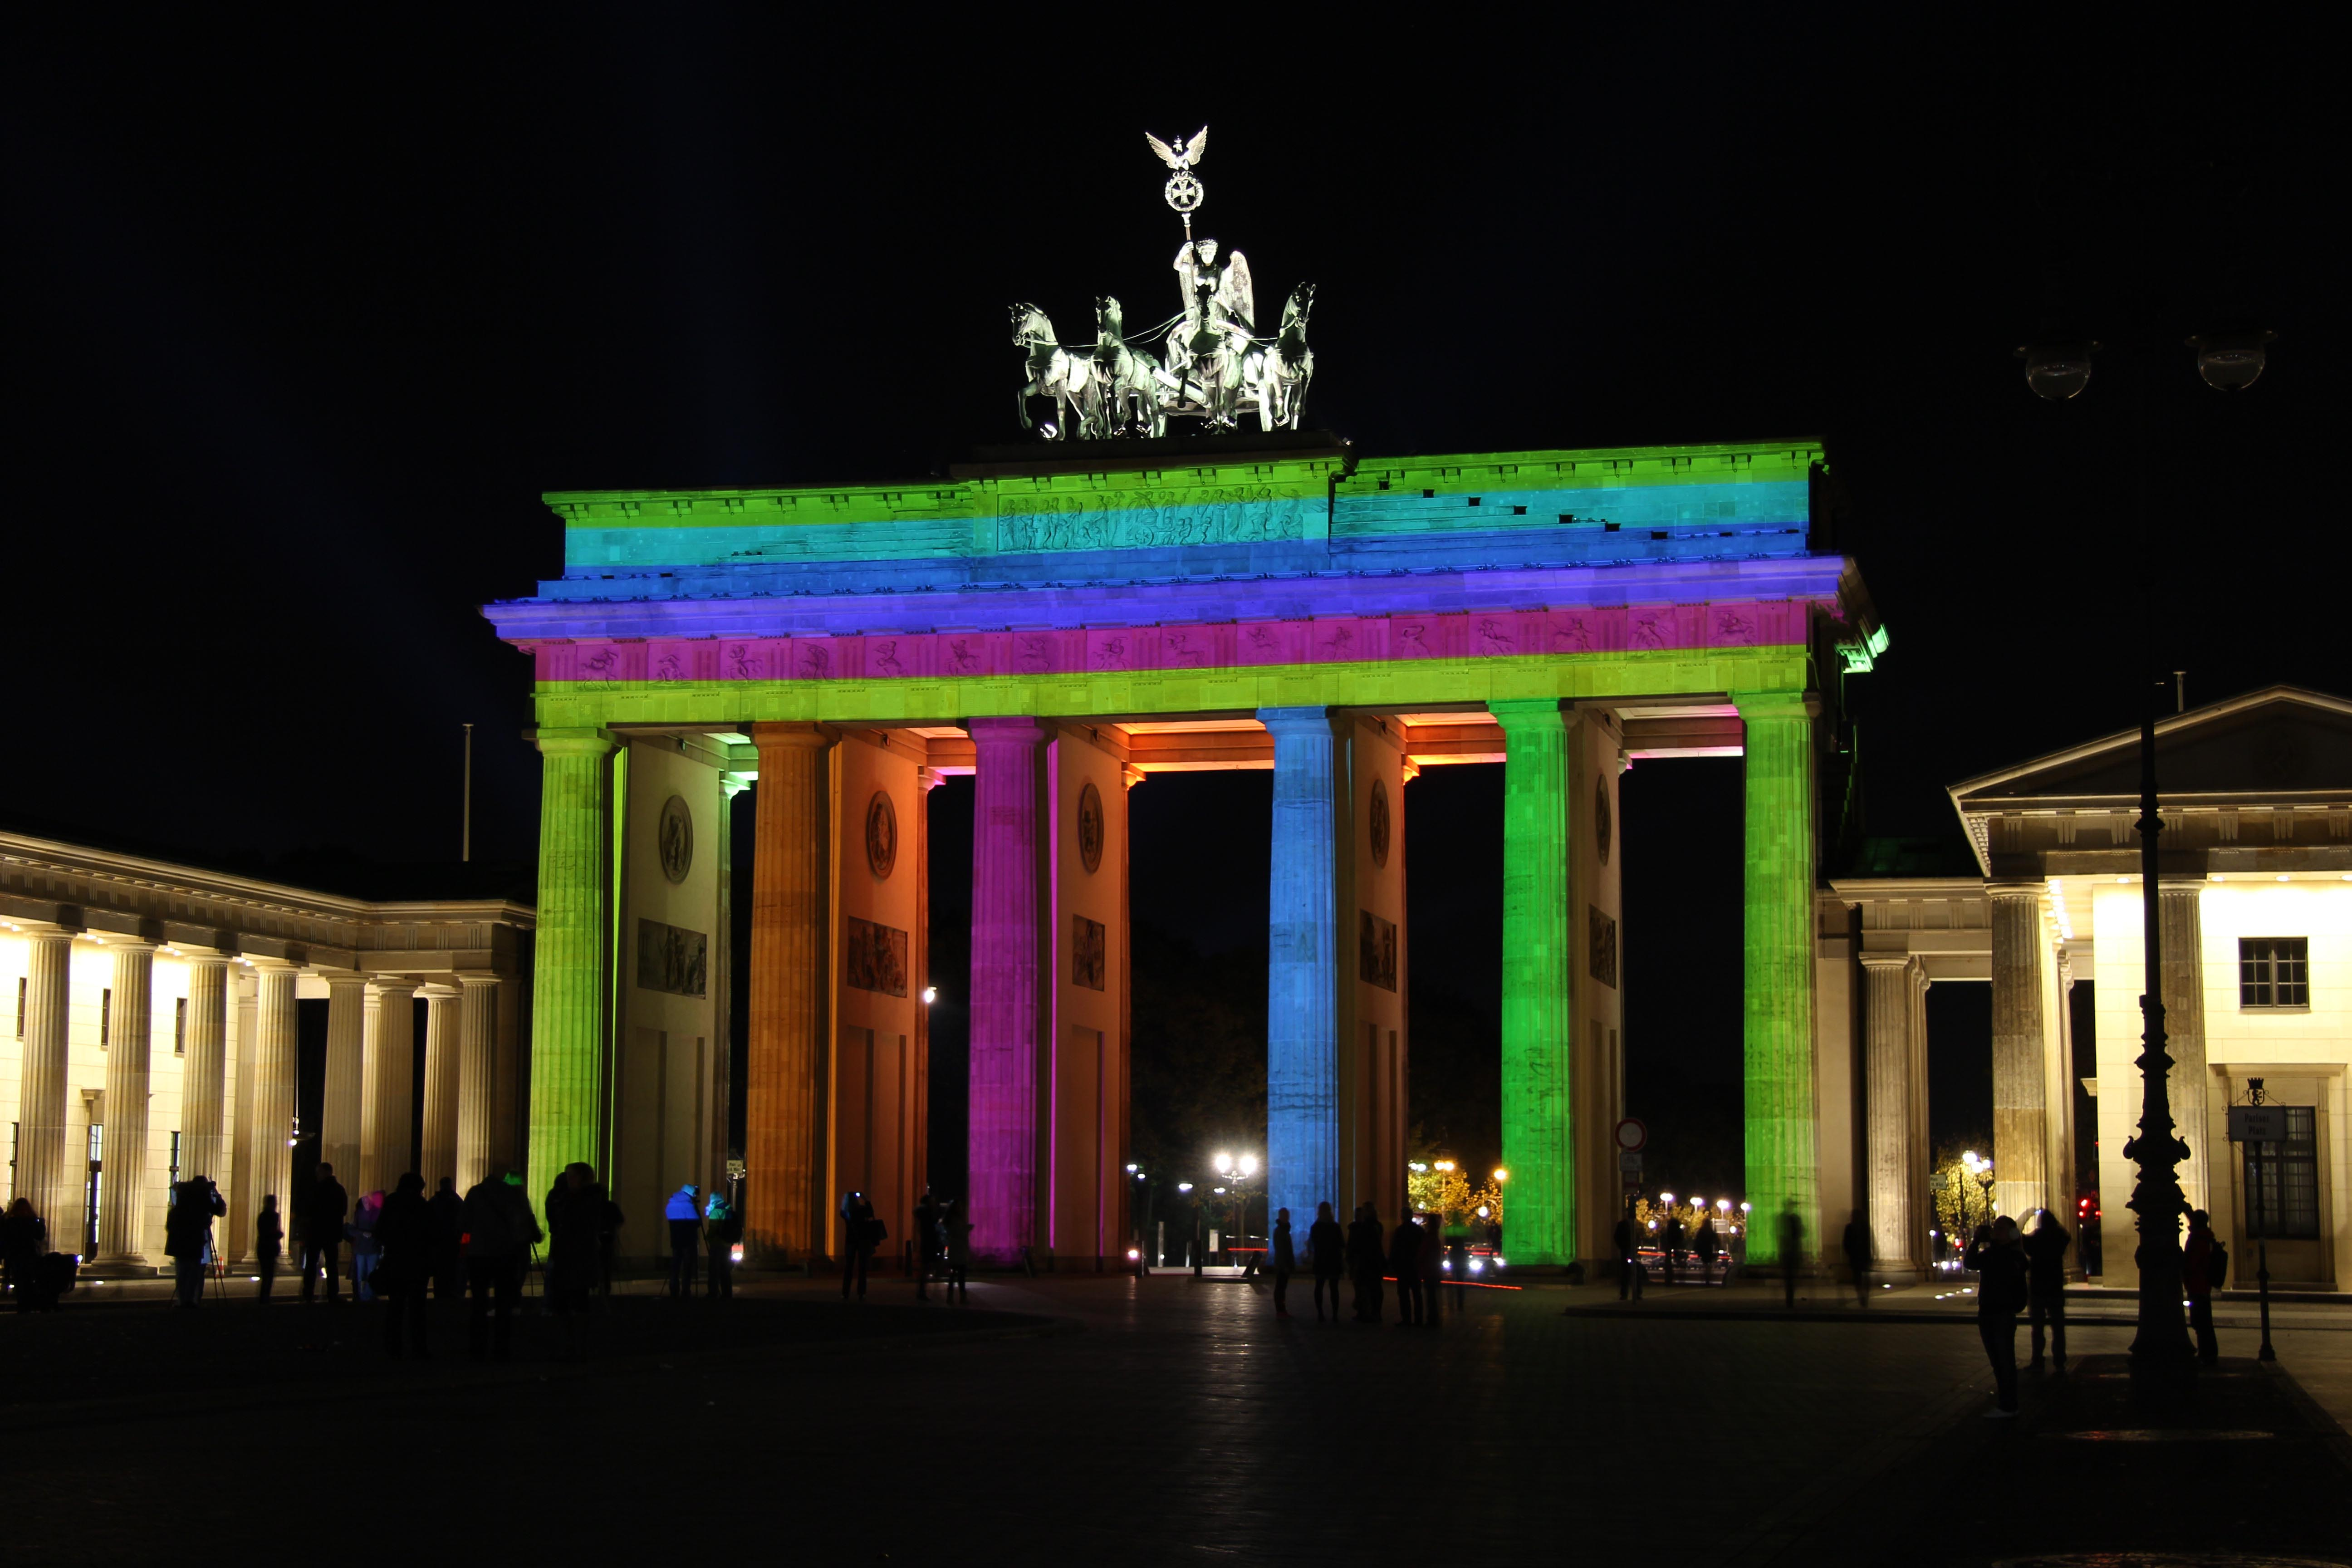 Brandenburger Tor (The Brandenburg Gate) lit up in many colours during the Festival of Lights in Berlin